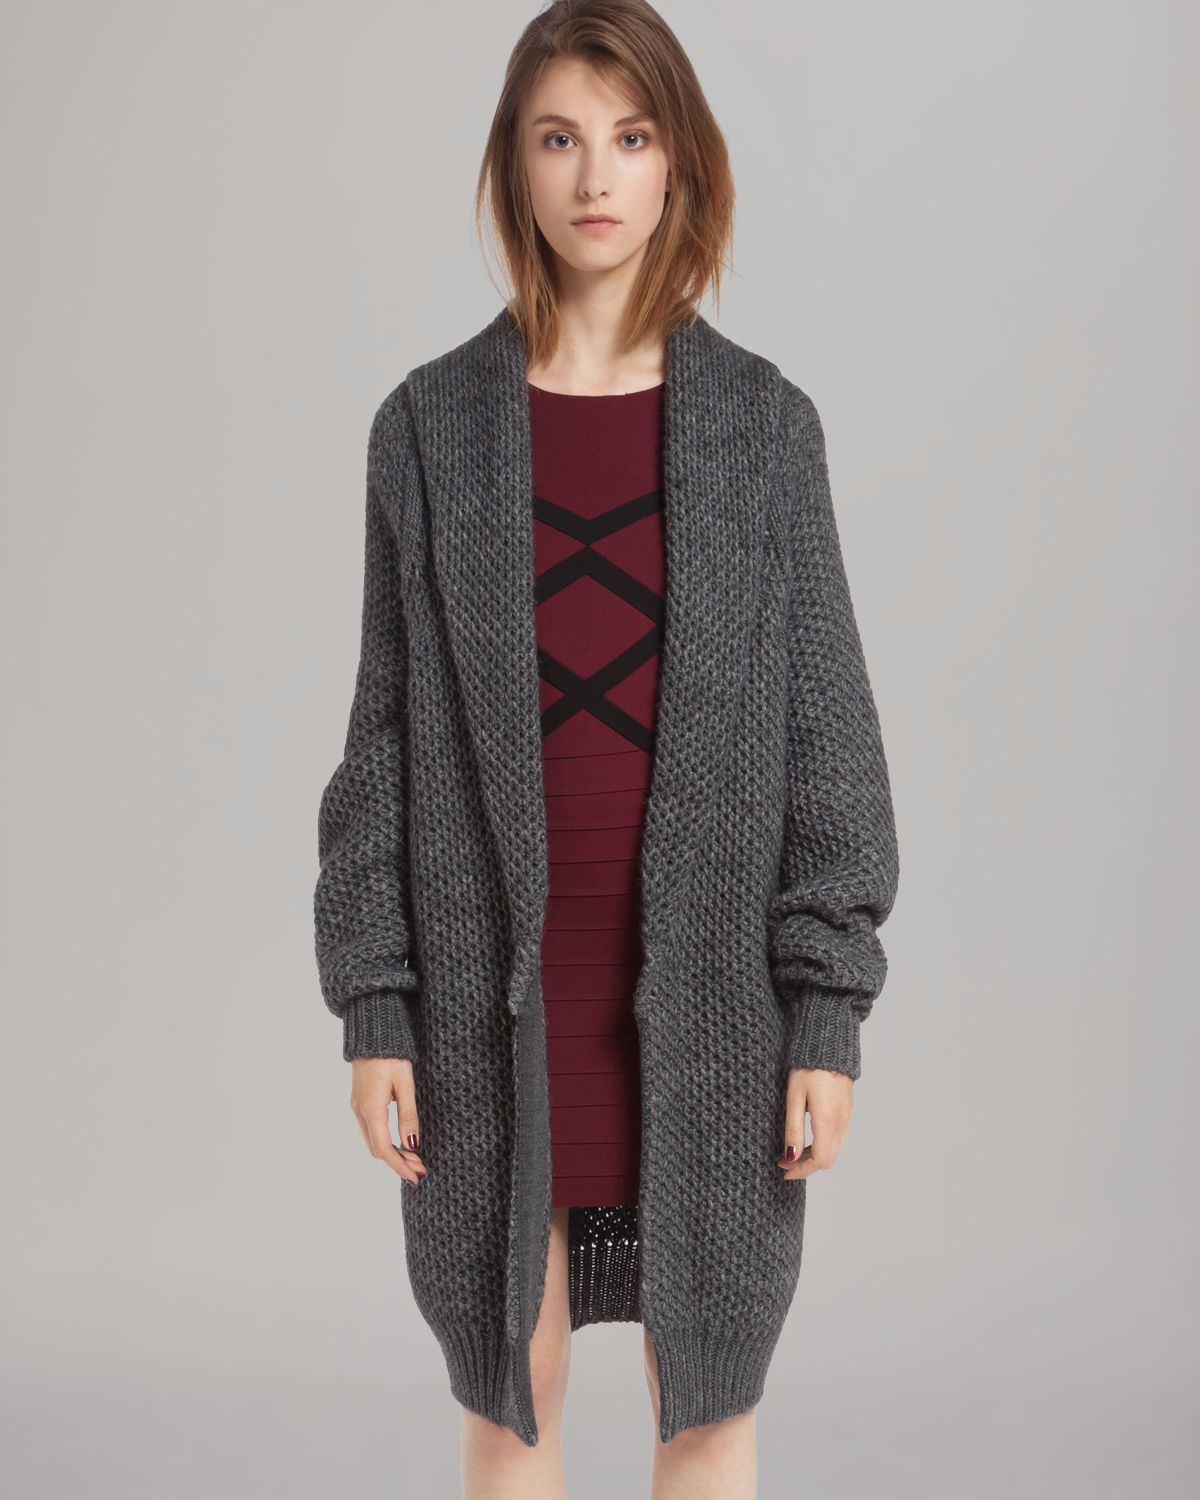 Maje Cardigan Oversized in Gray | Lyst